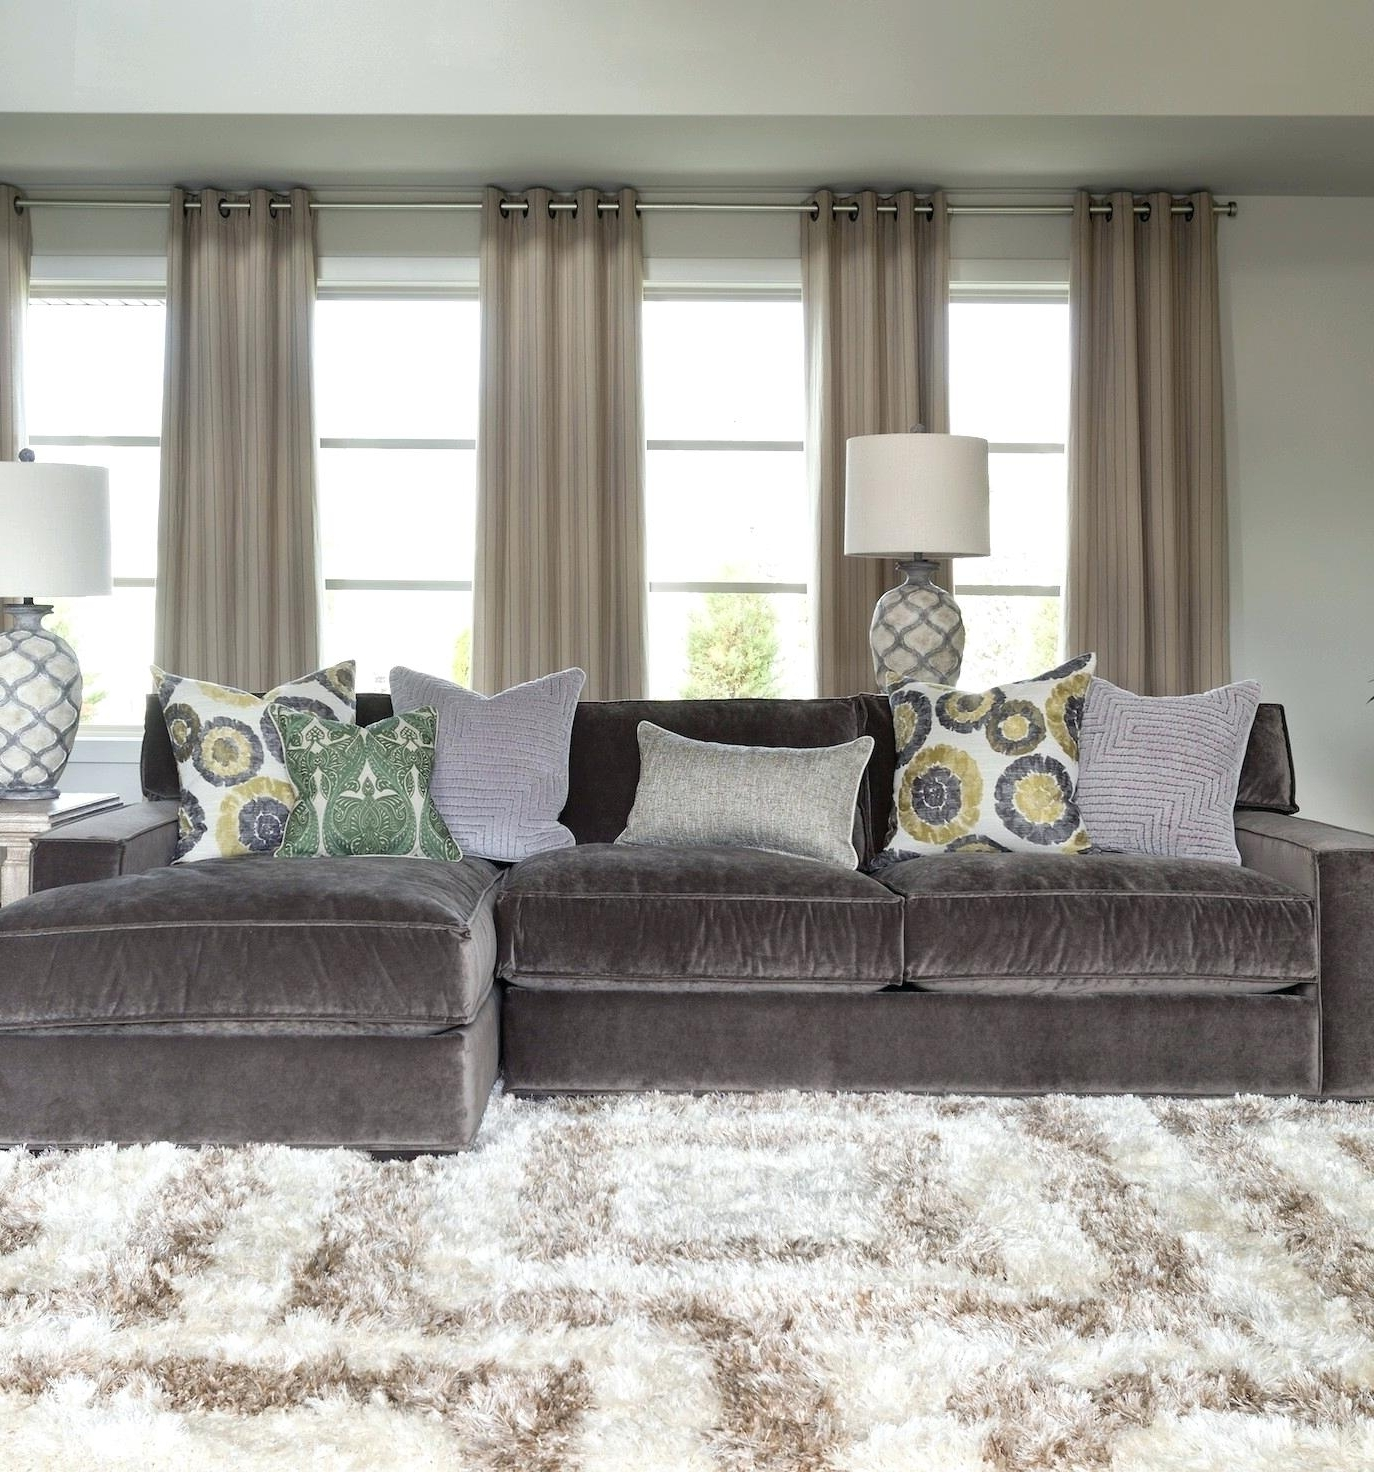 Huge Sofas With Popular Oversized Sectional Sofa Couches For Sale Set Huge Sofas (View 18 of 20)